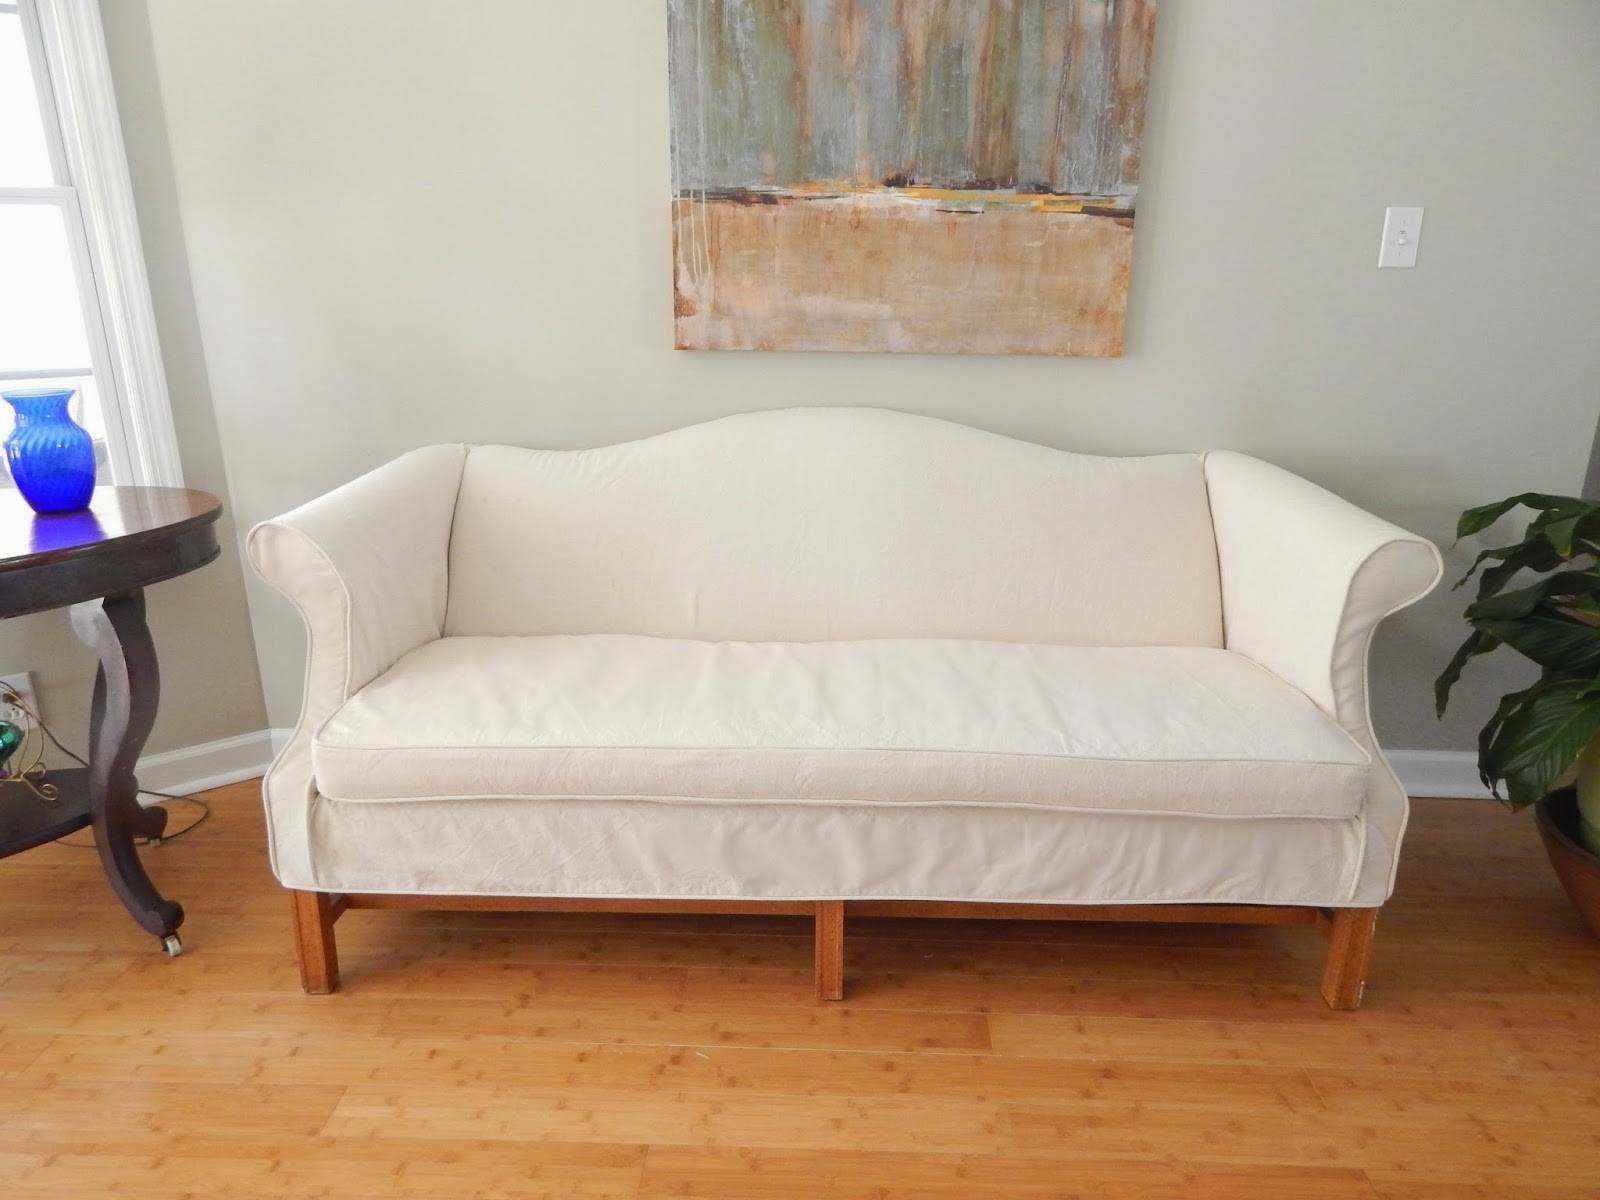 Ideas: Canvas Couch Covers | Pottery Barn Slipcovers | Linen Sofa With Regard To Canvas Sofa Slipcovers (View 8 of 15)